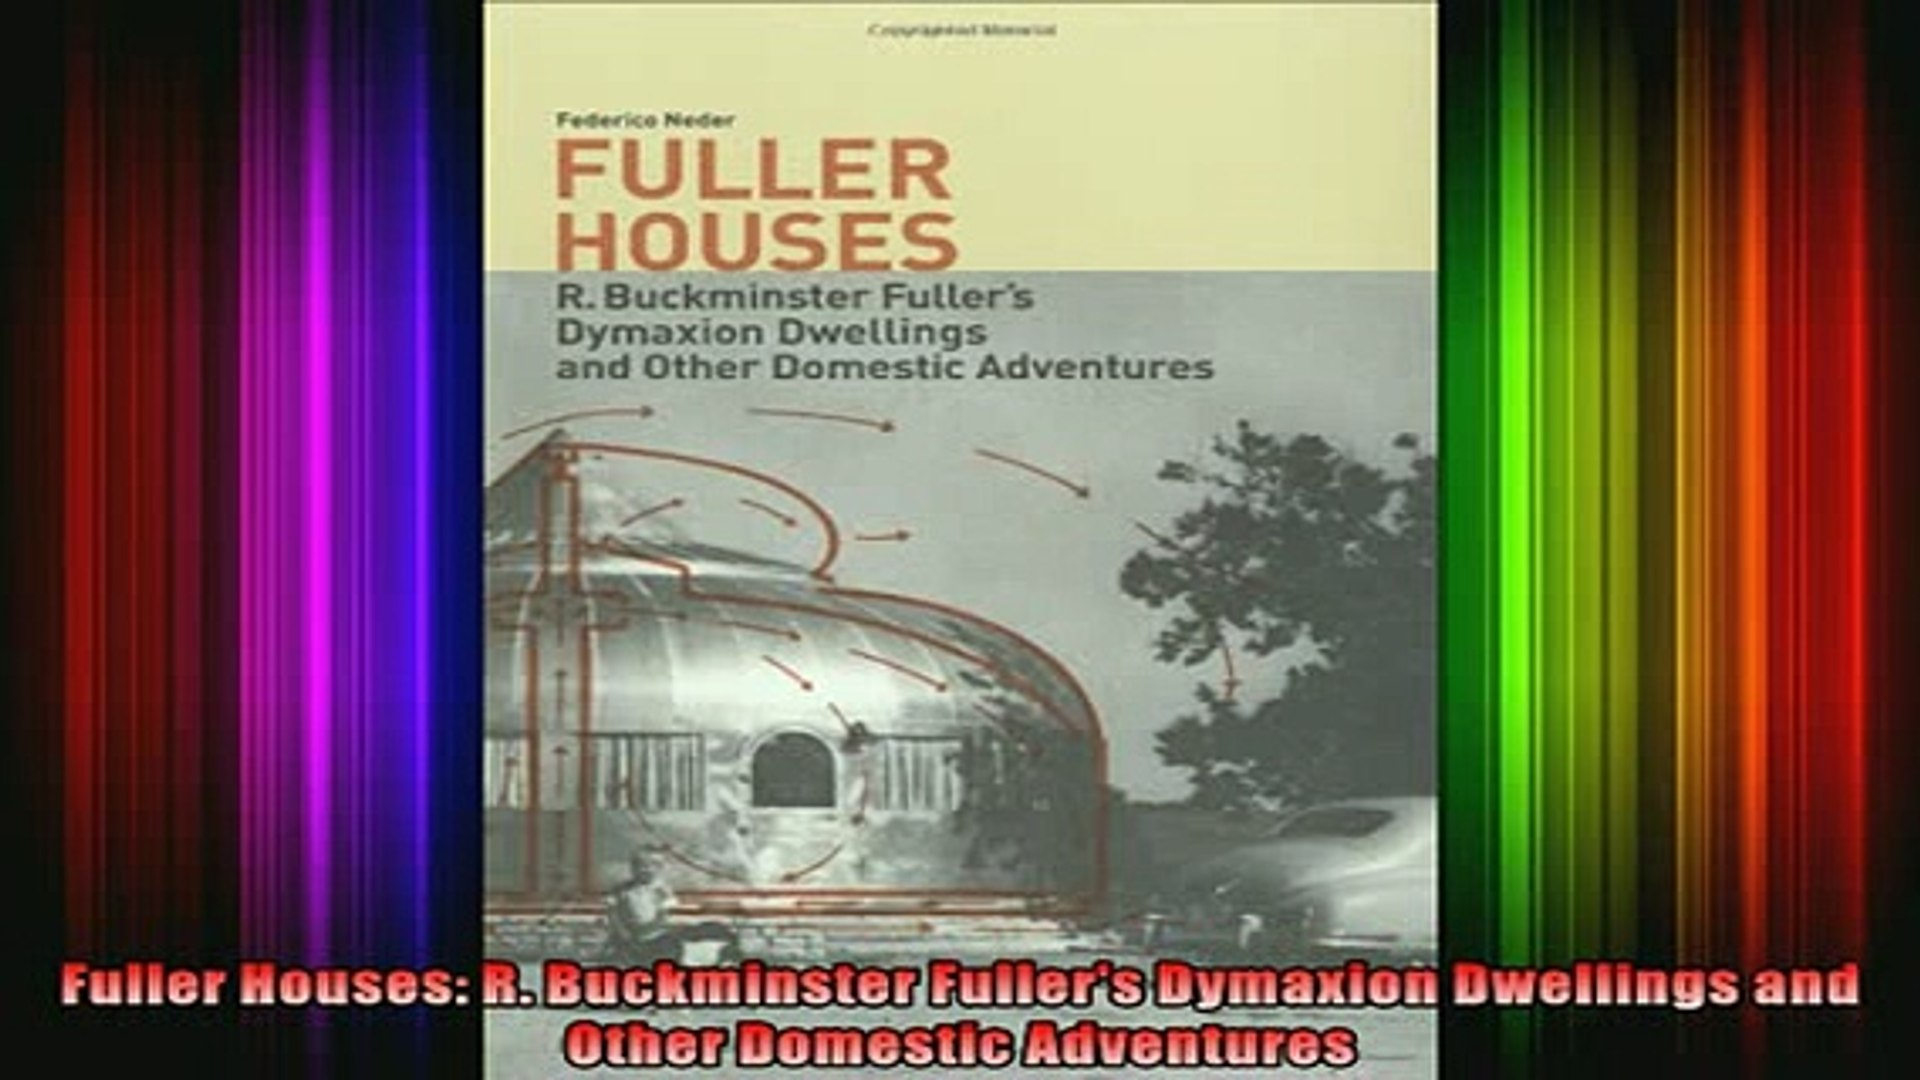 Download  Fuller Houses R Buckminster Fullers Dymaxion Dwellings and Other Domestic Adventures Full